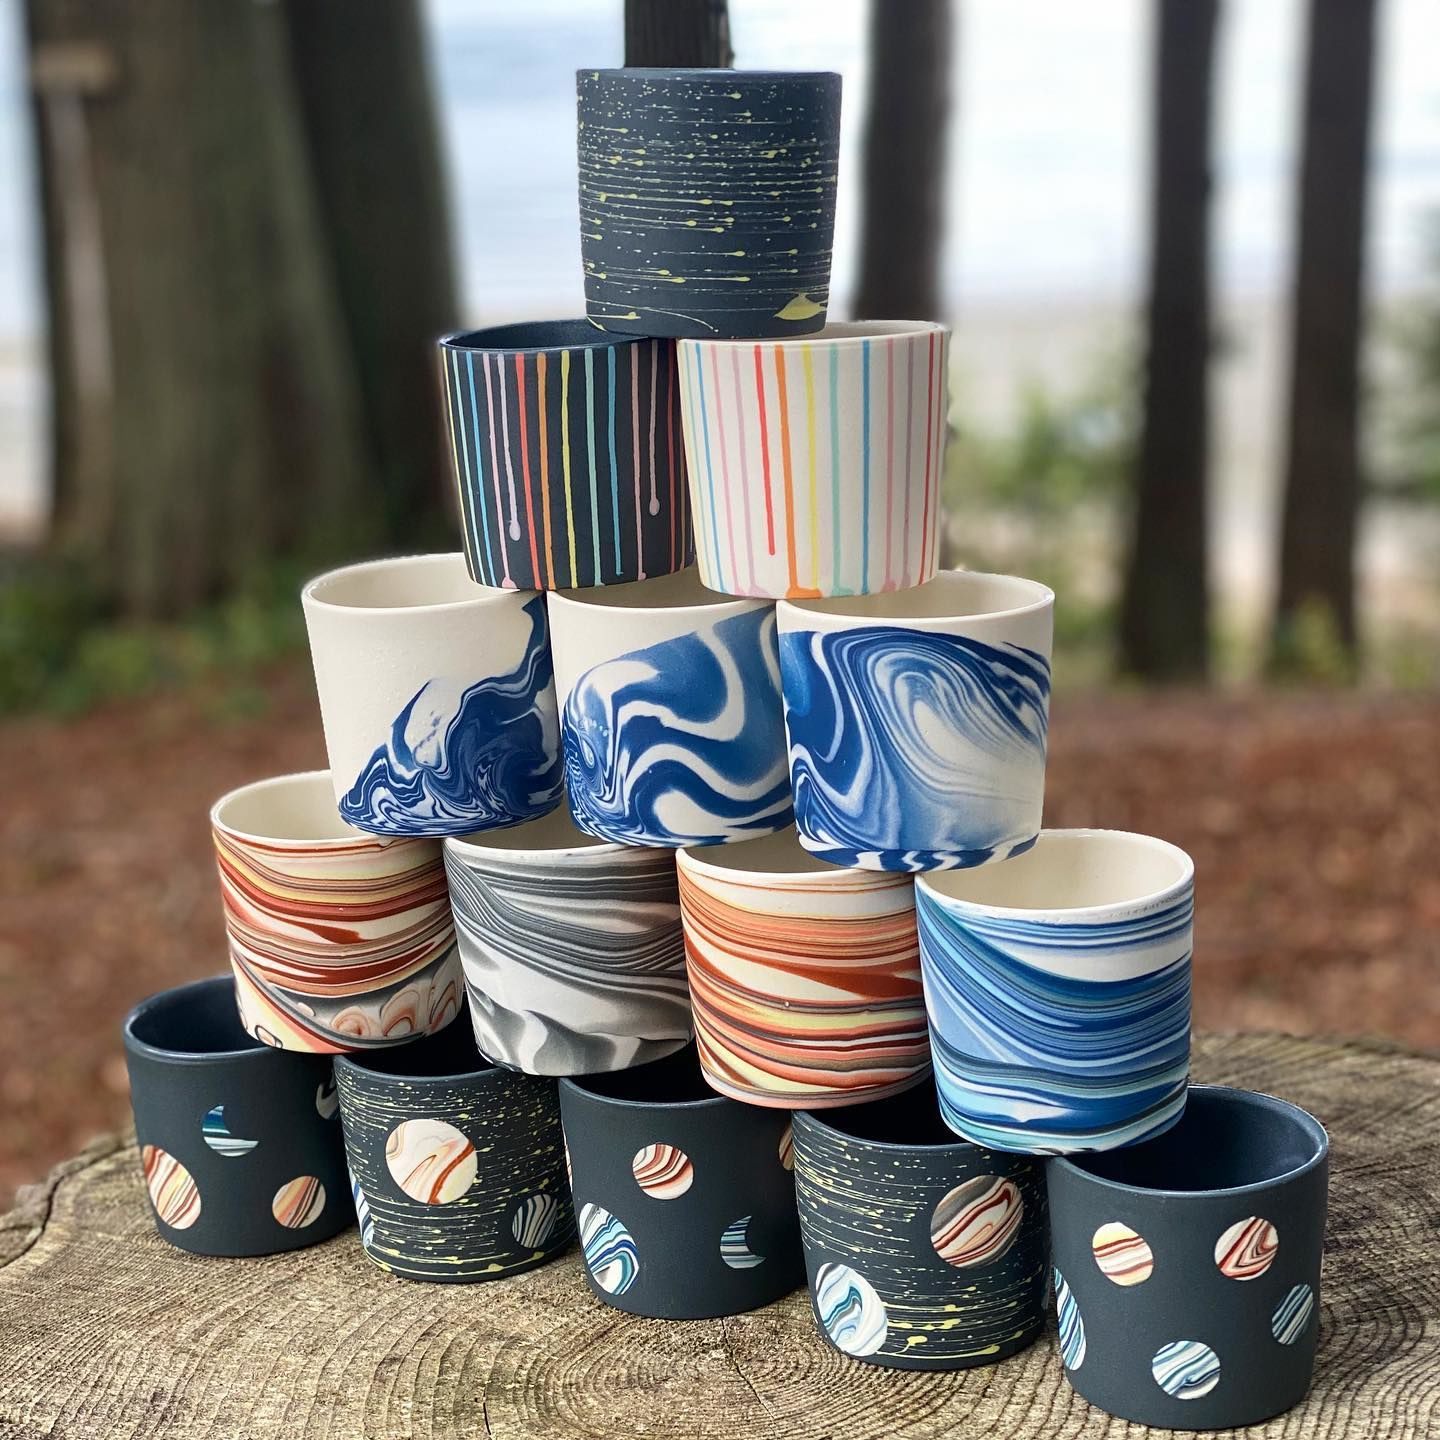 Sean Forest Roberts handcrafts gorgeous porcelain tableware pieces in is his studio on Orcas Island, using an innovative process that he created. (Photo: Forest Ceramic Co.)<br><p></p><p></p><p></p><p></p><p></p>